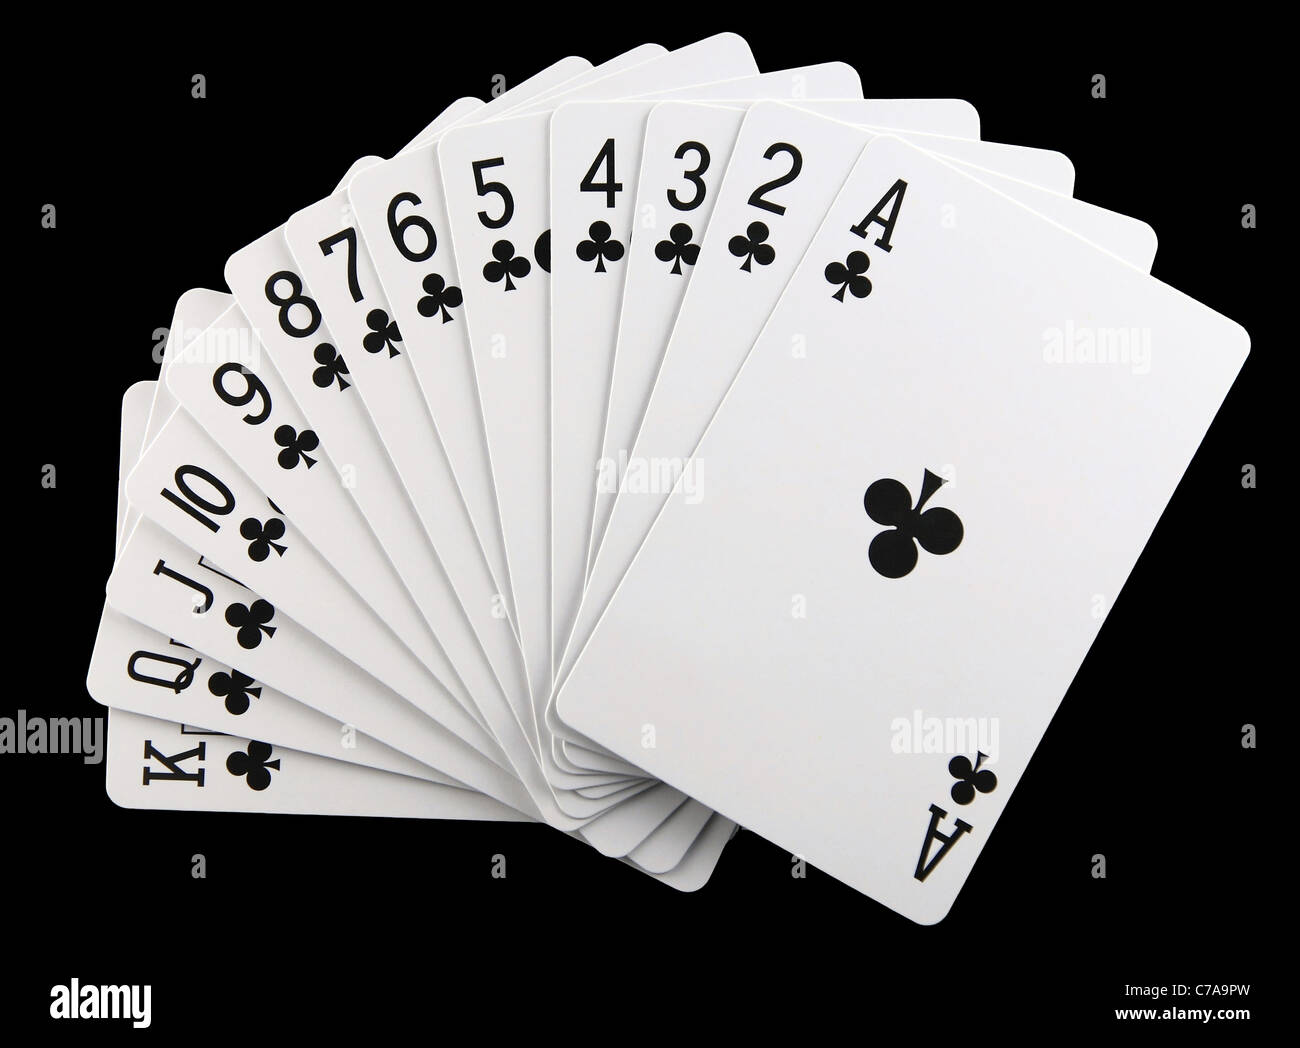 Clubs Suit In A Playing Deck Of Cards Isolated On Black Stock Photo Alamy